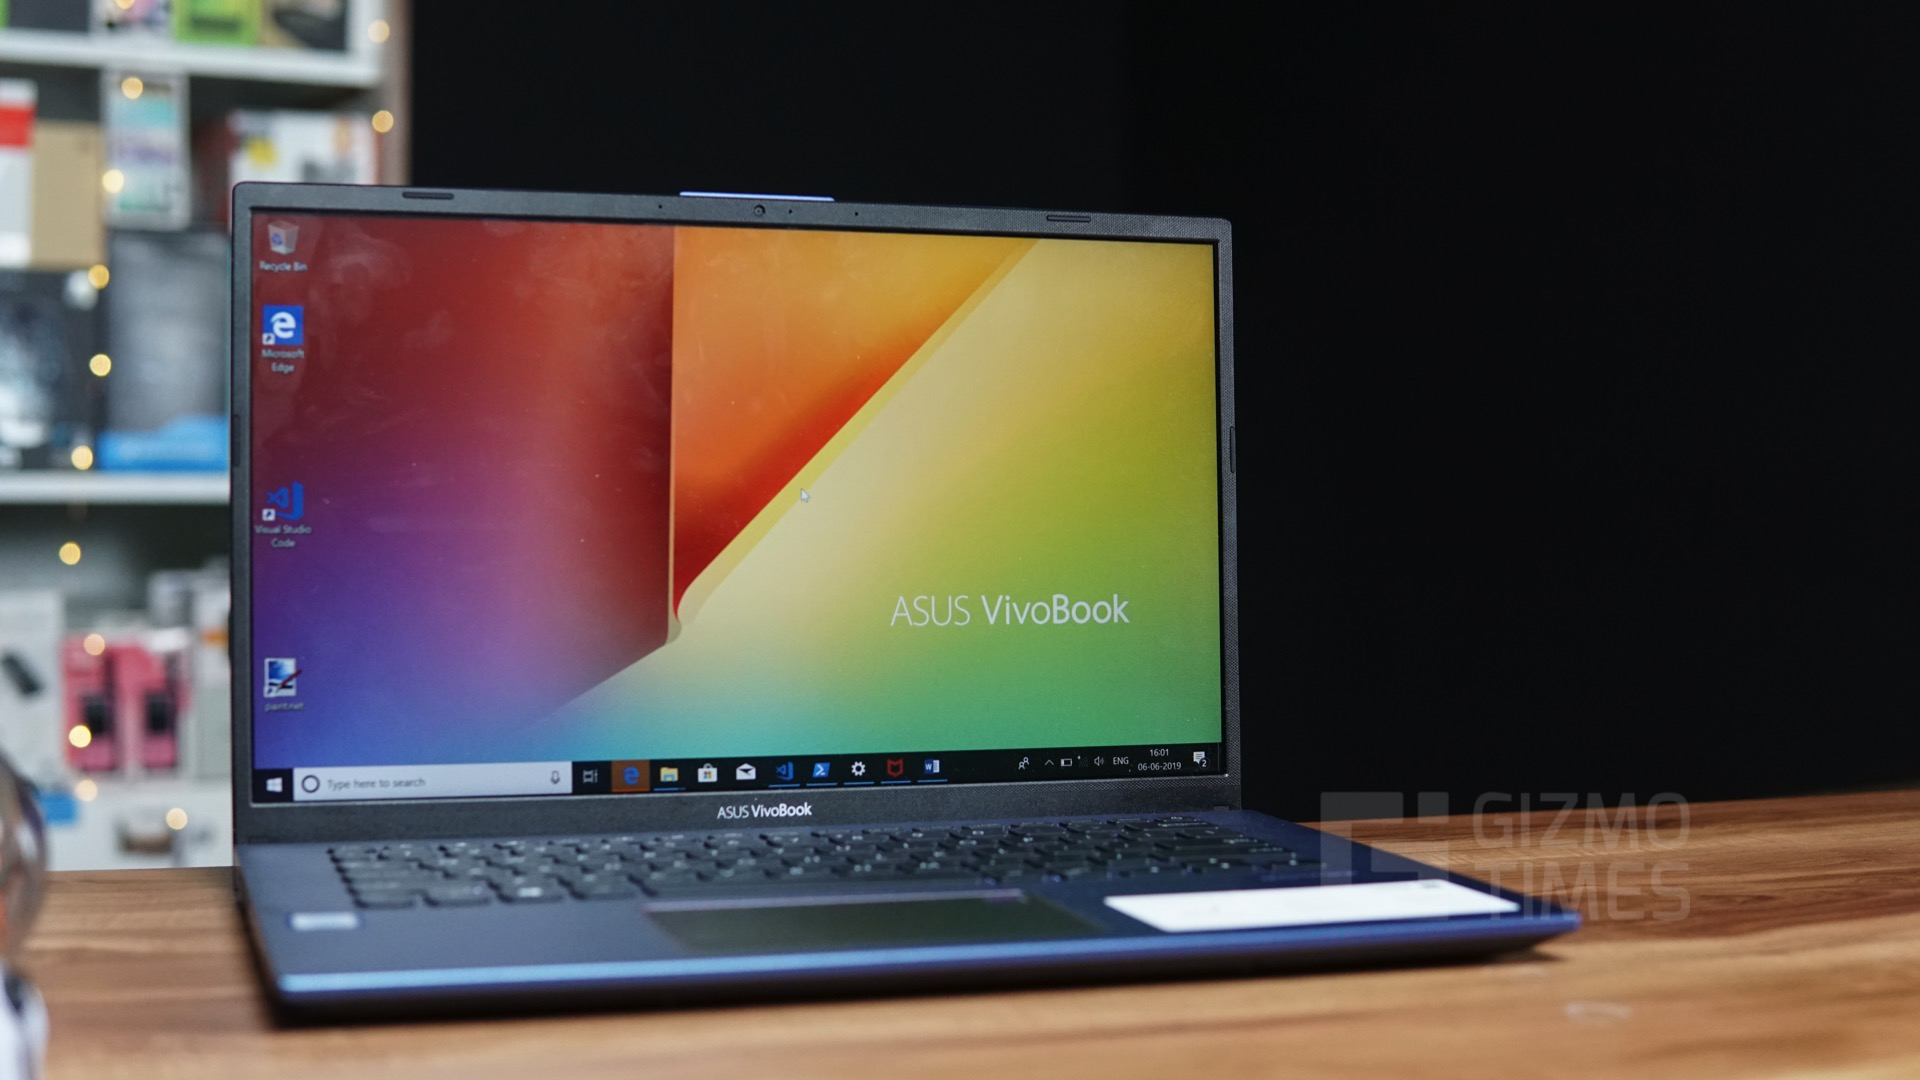 Asus VivoBook 14 X412 Review - Offers a superior performance